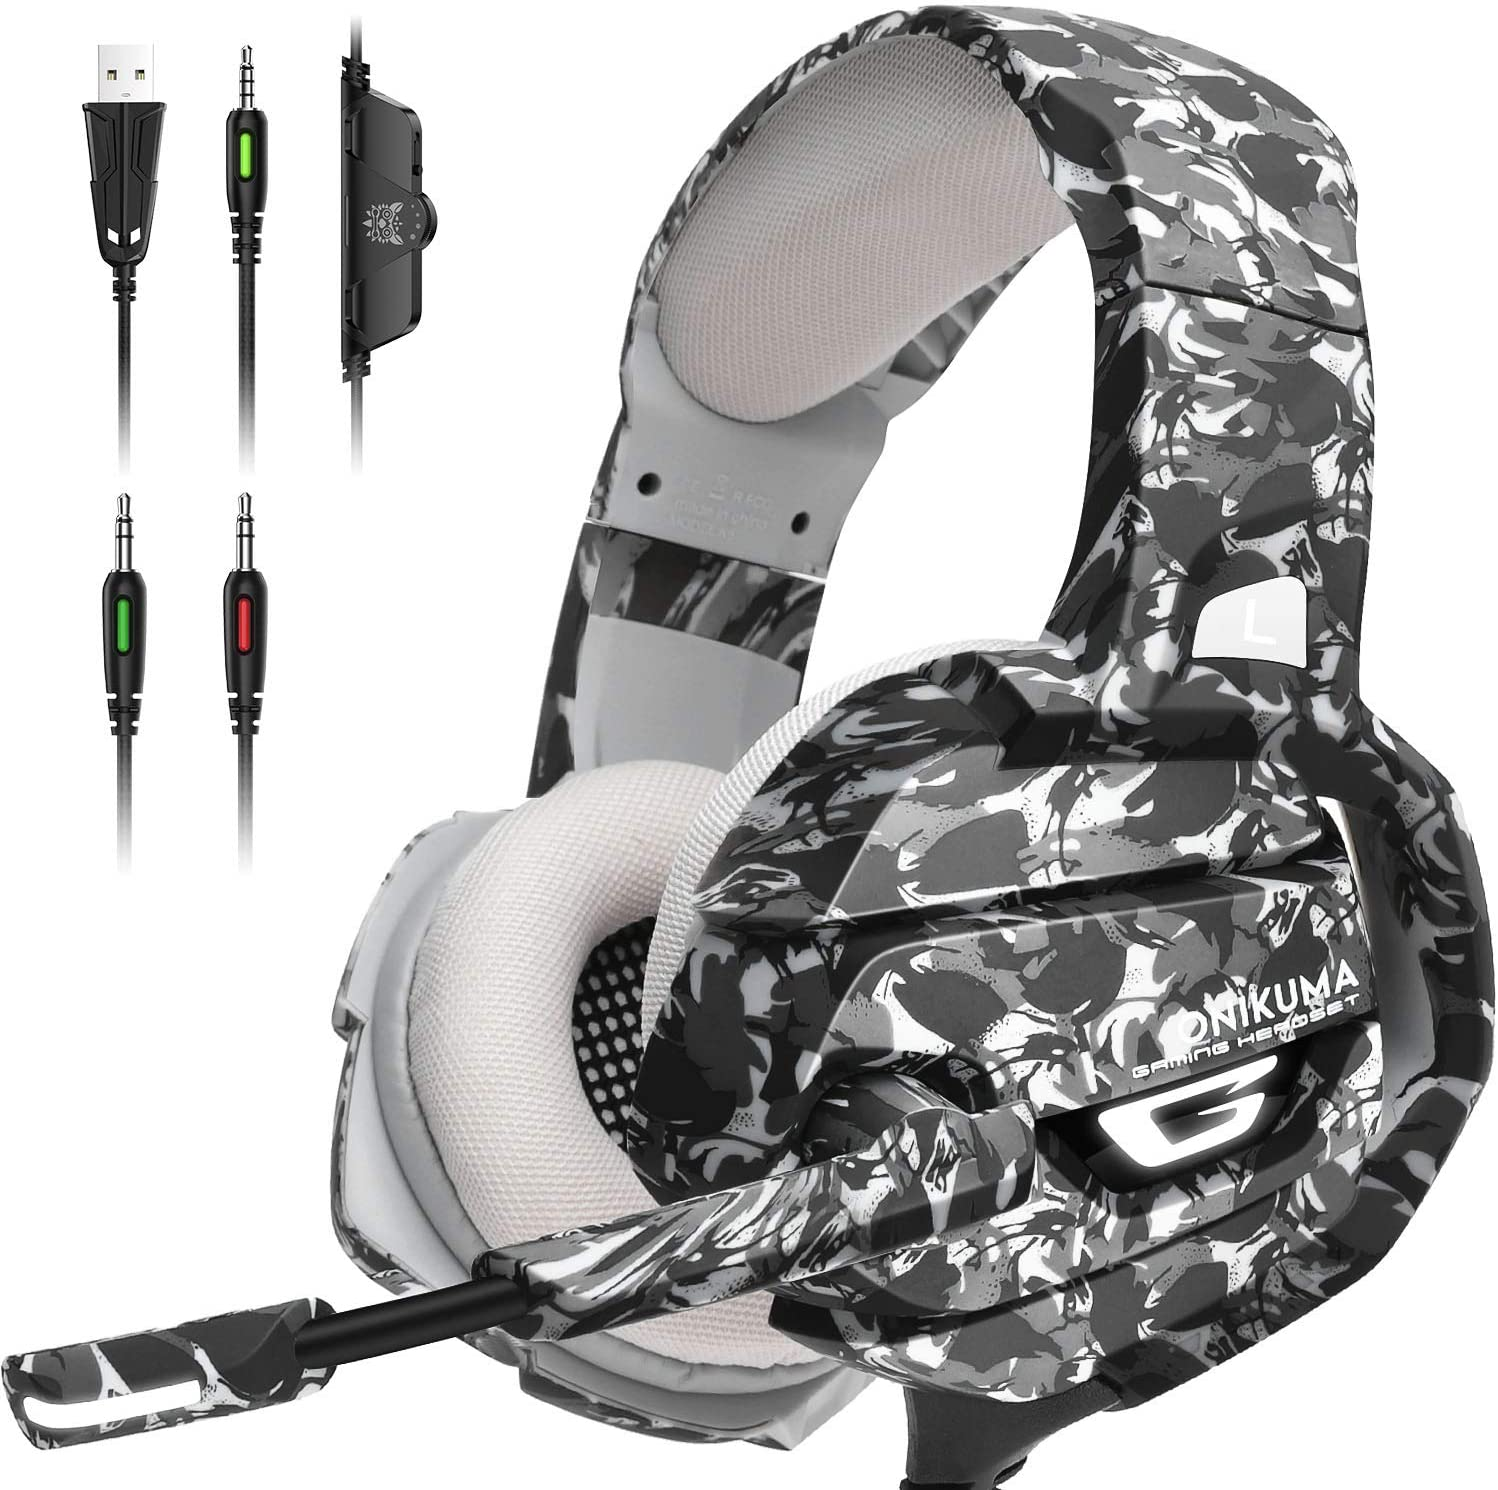 ONIKUMA Gaming Headset PS4 Headset with 7.1 Surround Sound, Xbox One Headset with Noise Canceling Mic & LED Light,Memory Earmuffs for PS4, MAC, PC,PS2,Xbox One Controller,Nintendo 64, Game Boy